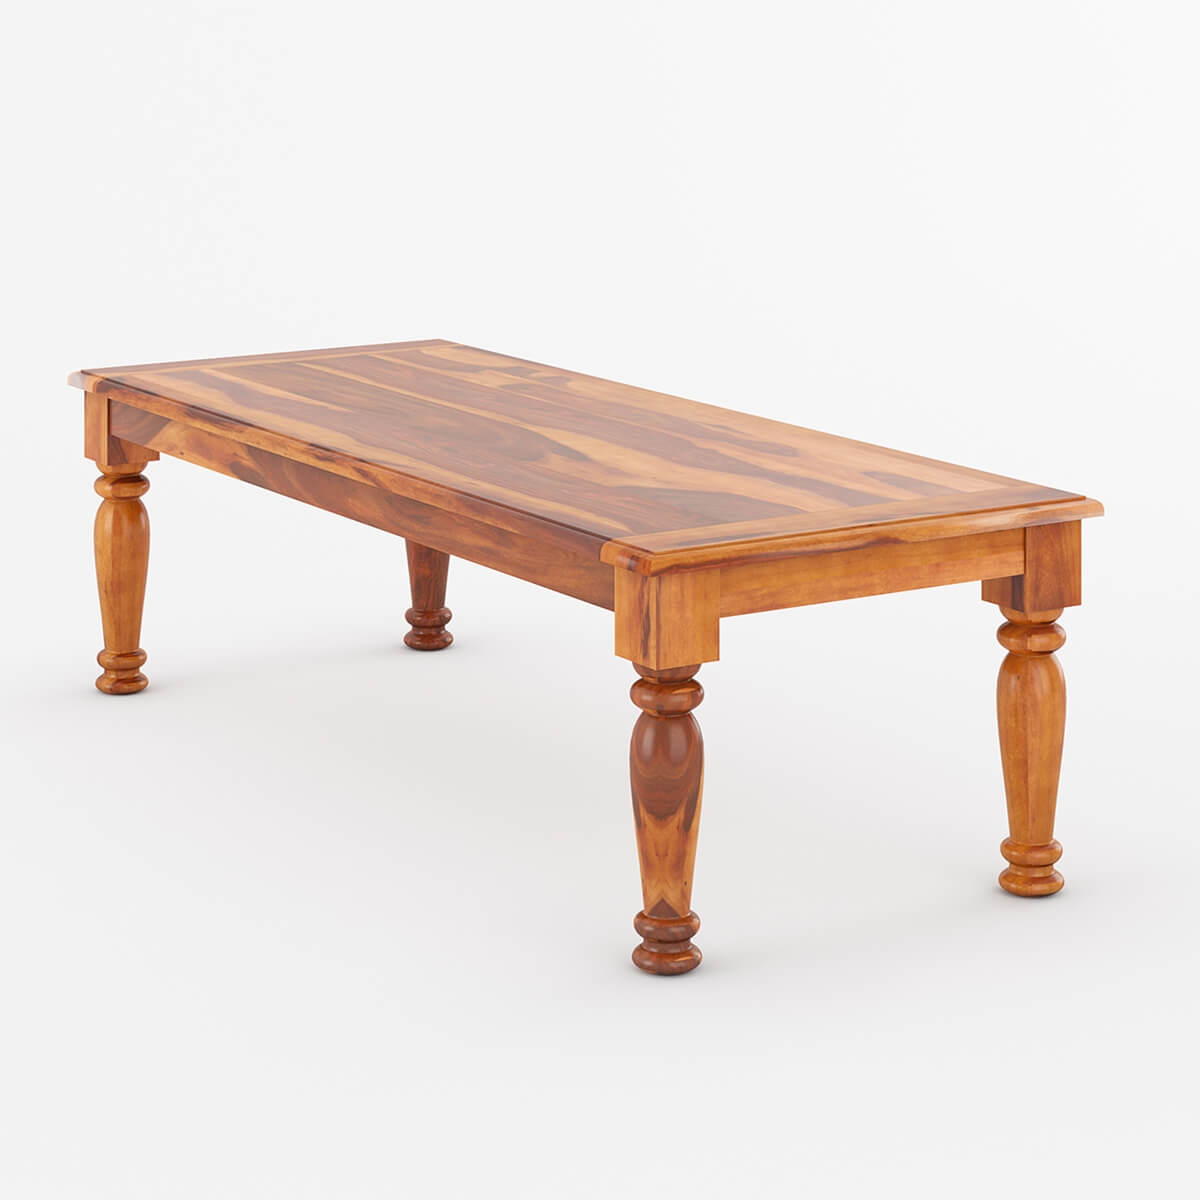 Rustic Large Solid Wood Rectangular Dining Table